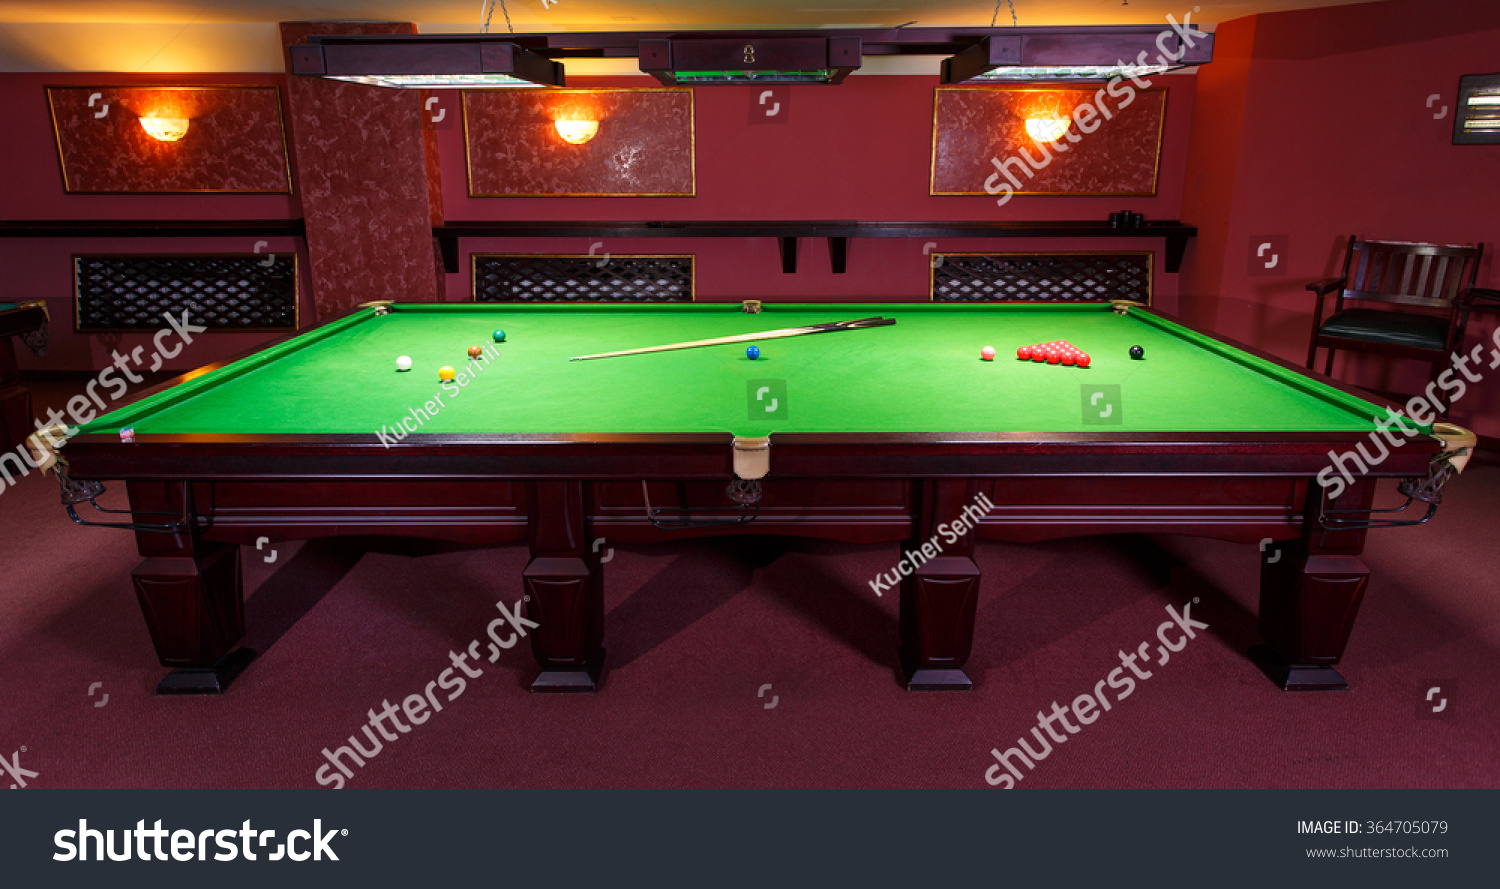 Setting Up A Pool Table Pool Table Set Game Front View Stock Photo 364705079 Shutterstock